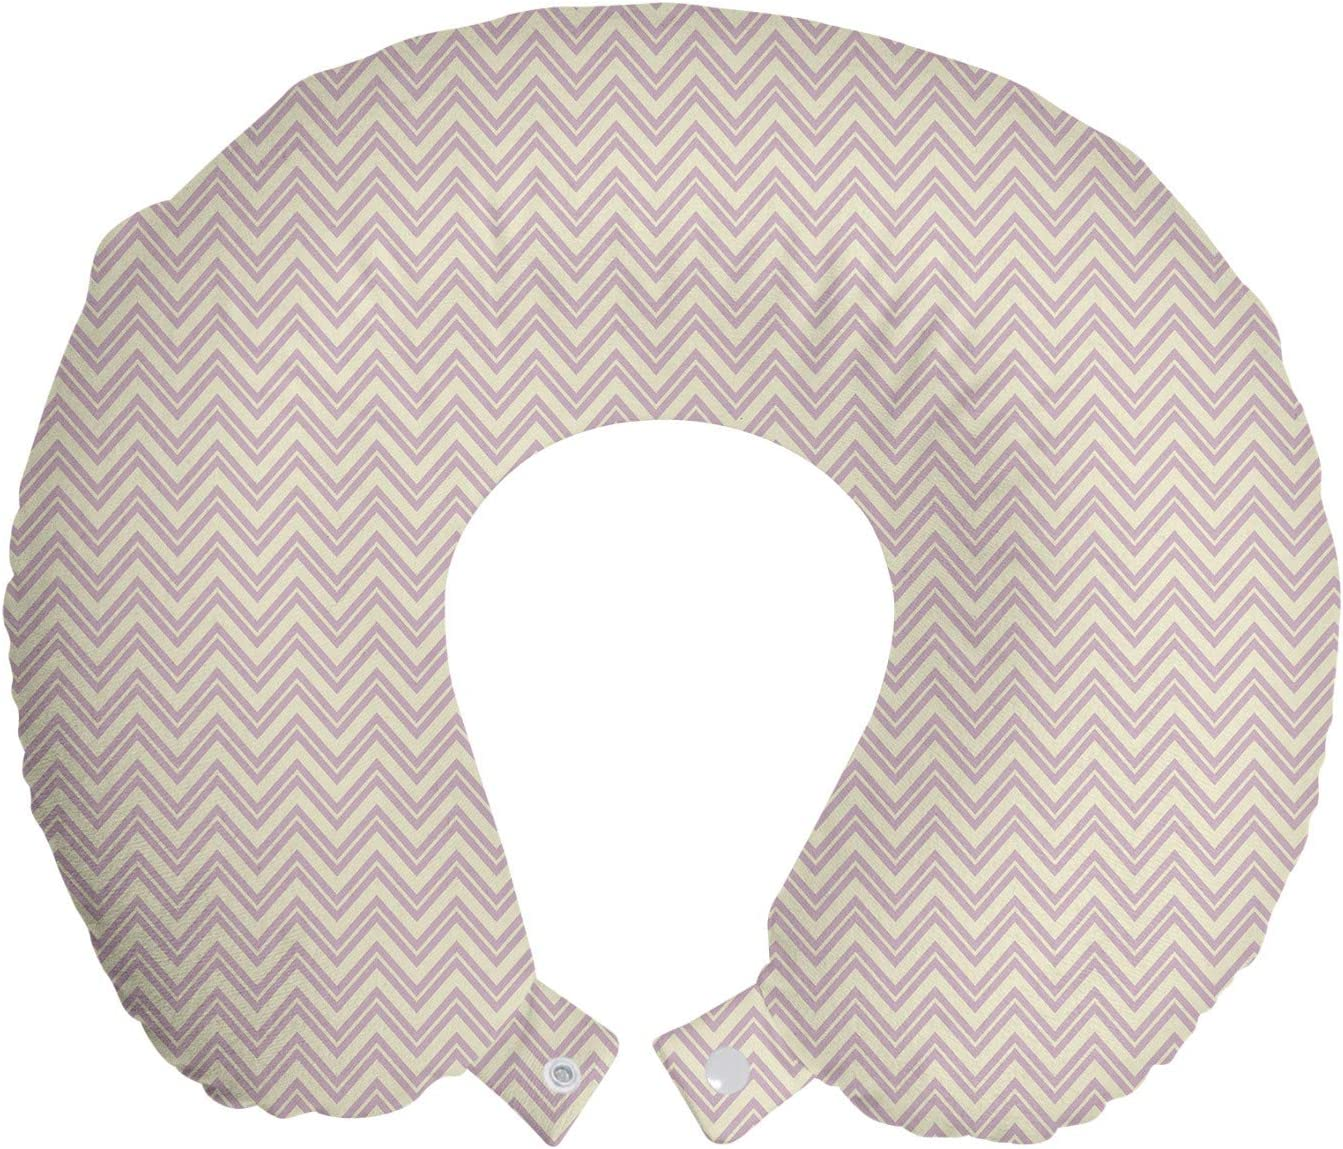 ABAKUHAUS Retro Travel Pillow Neck Rest